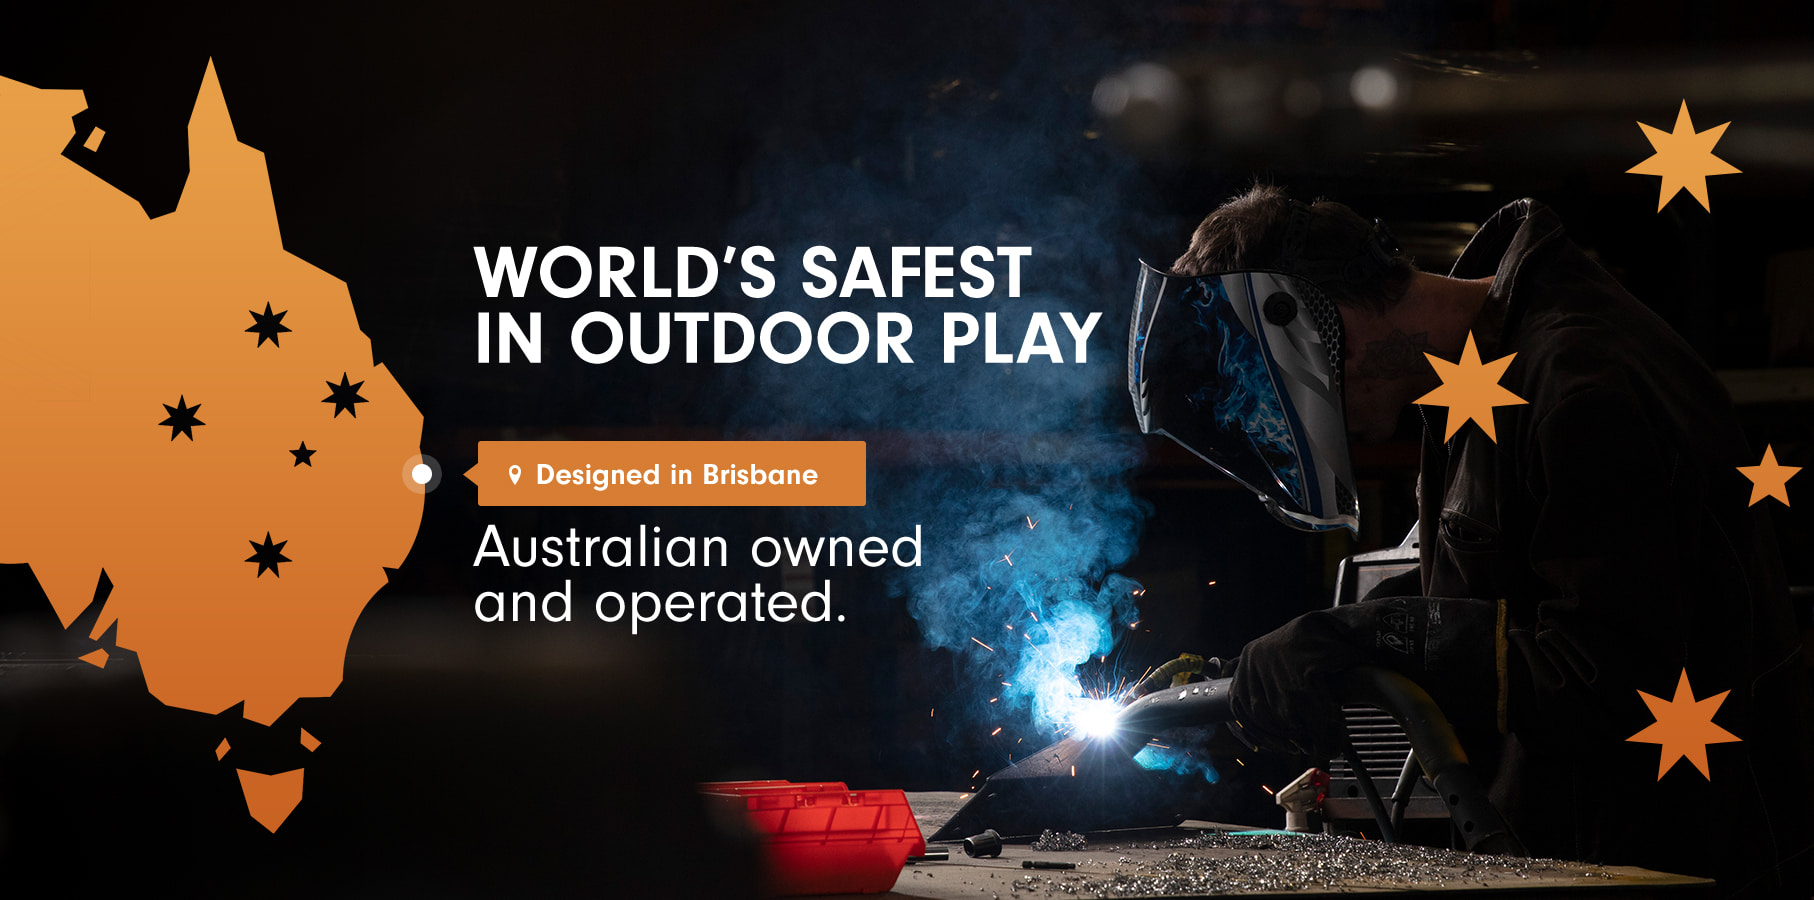 World's safest in outdoor play